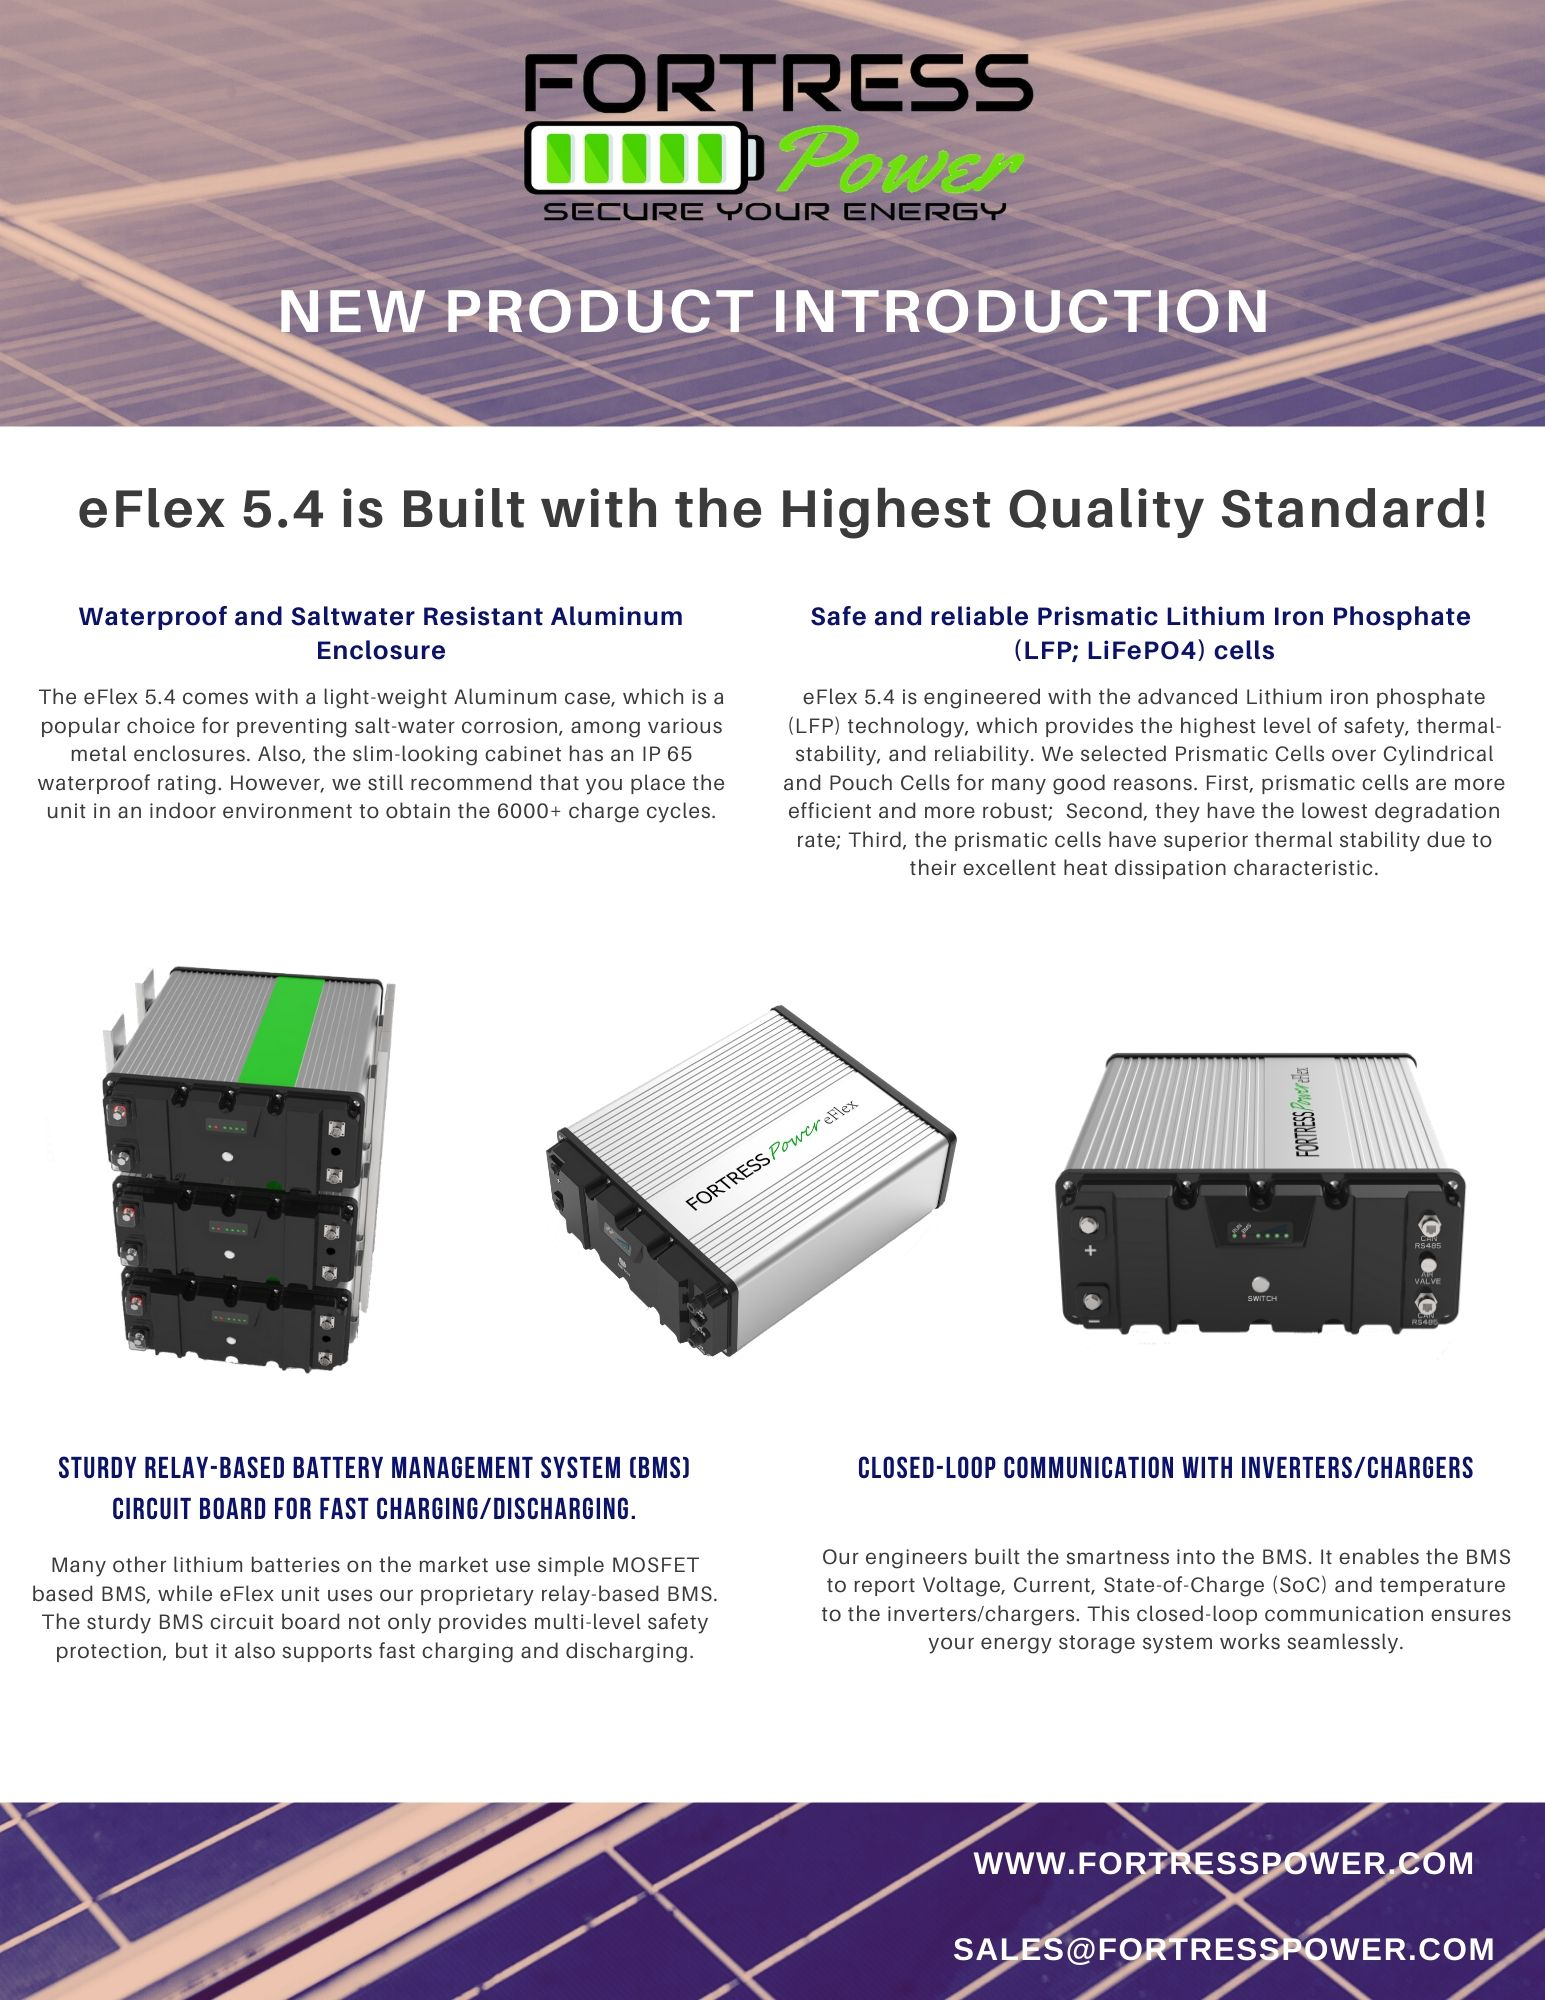 eFlex 5.4 is Built with the Highest Quality Standard! 1